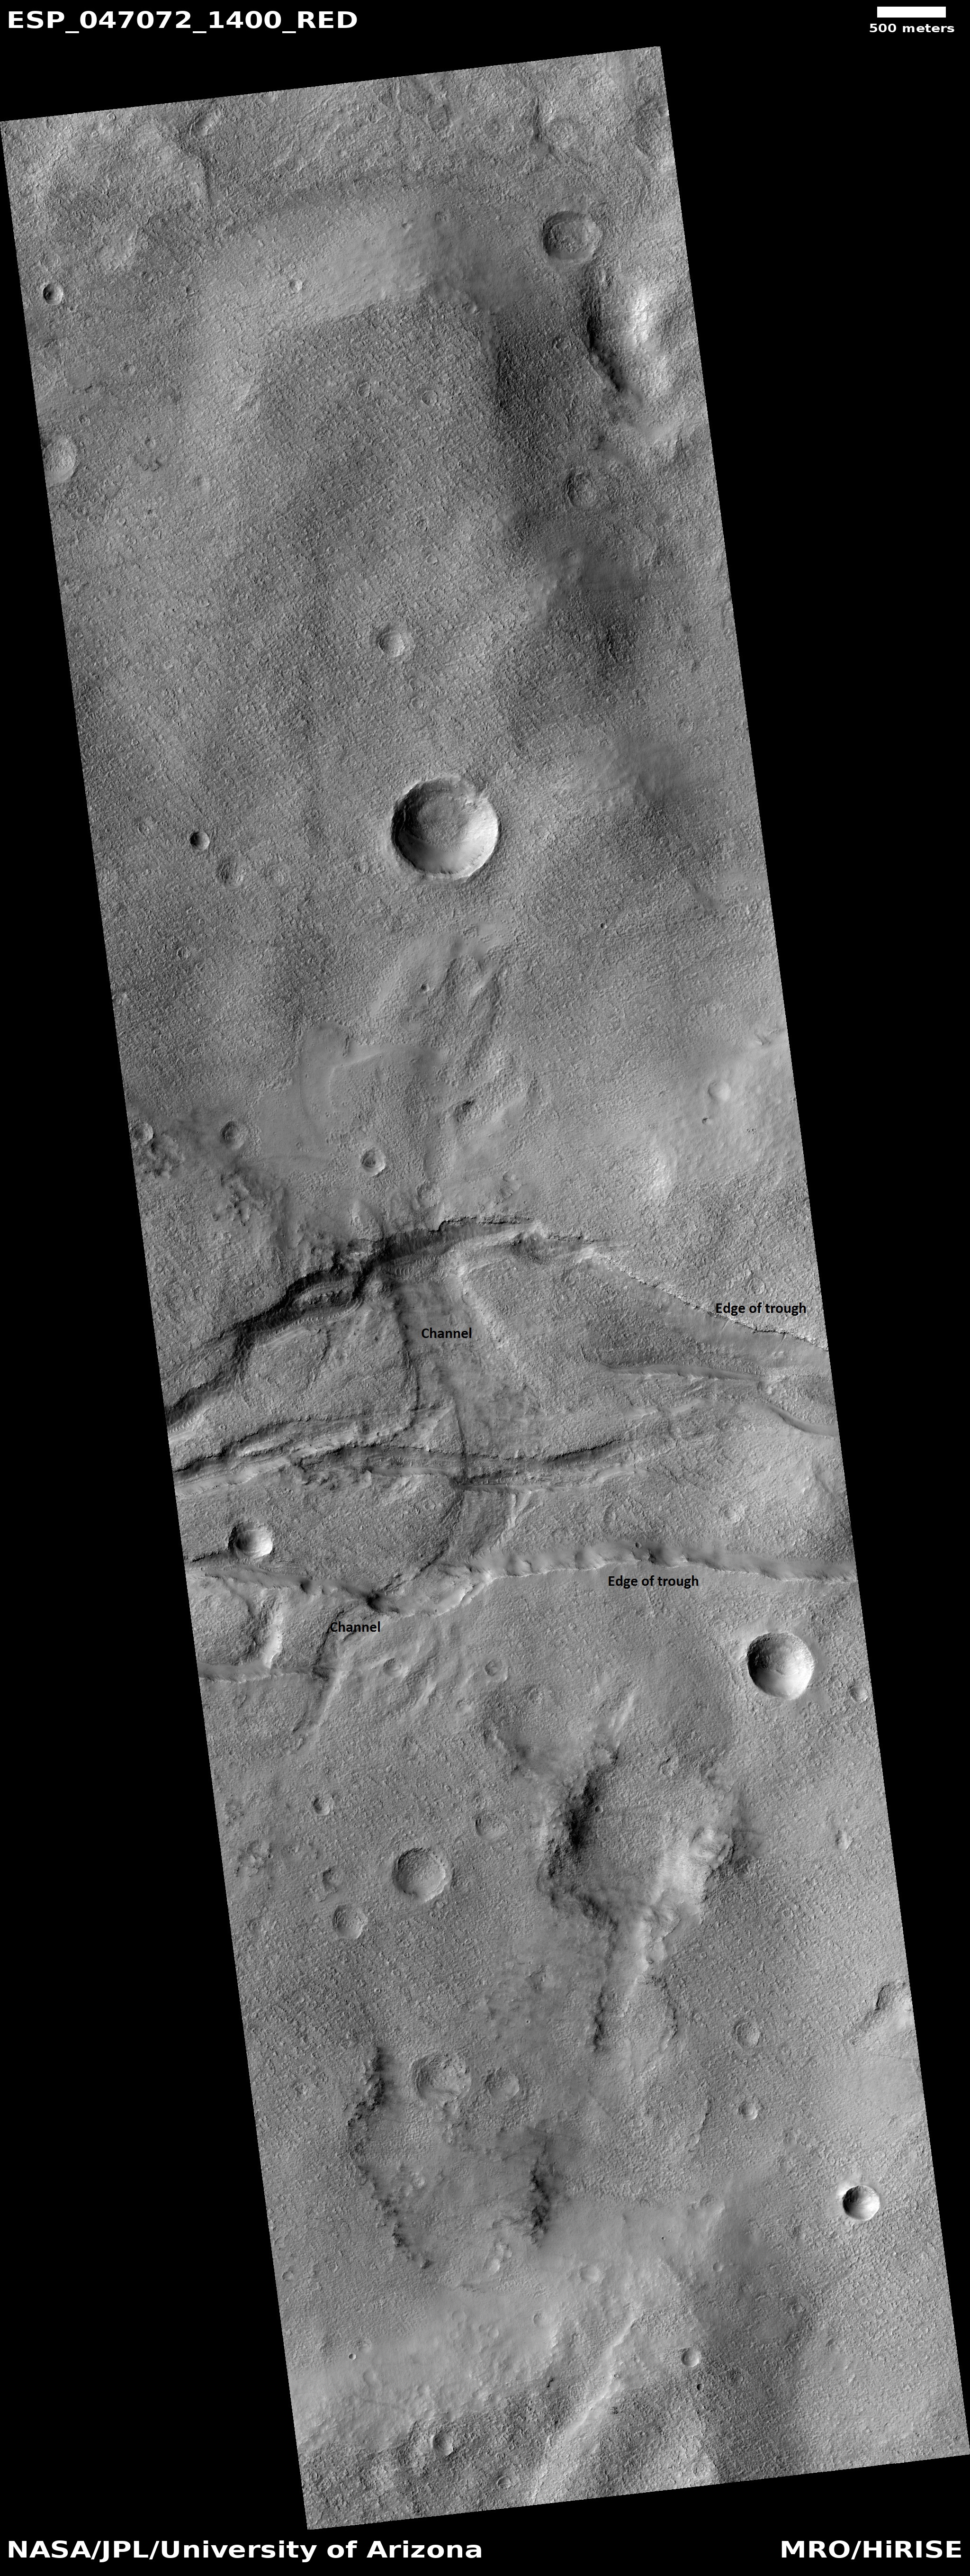 Channel cutting across trough, as seen by HiRISE under HiWish program The trough and channel are labeled.